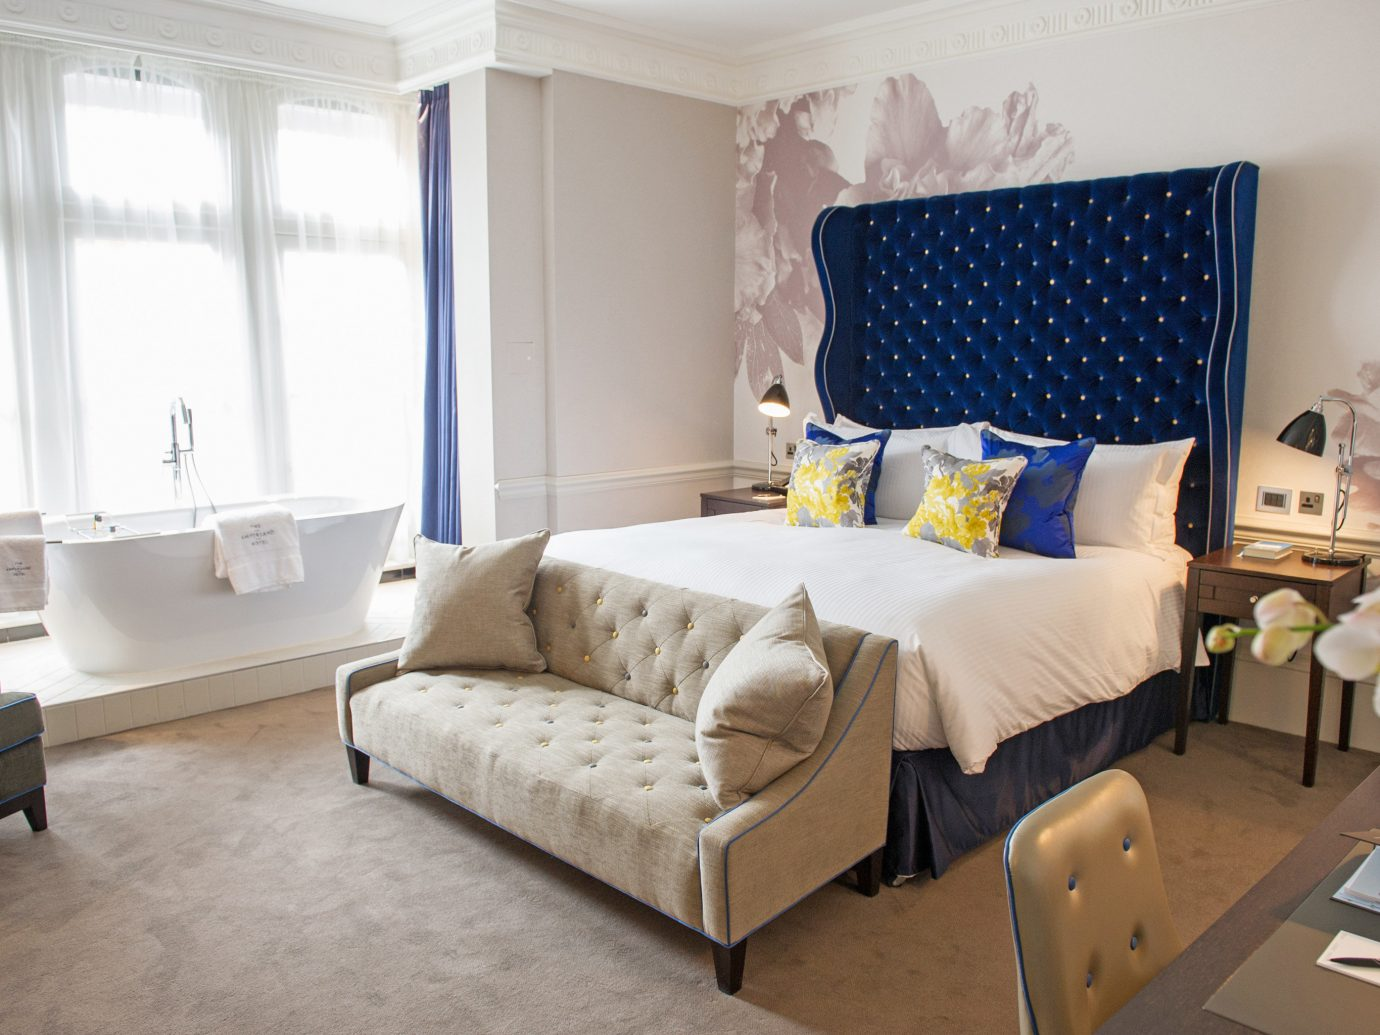 Bedroom at the Ampersand Hotel London.